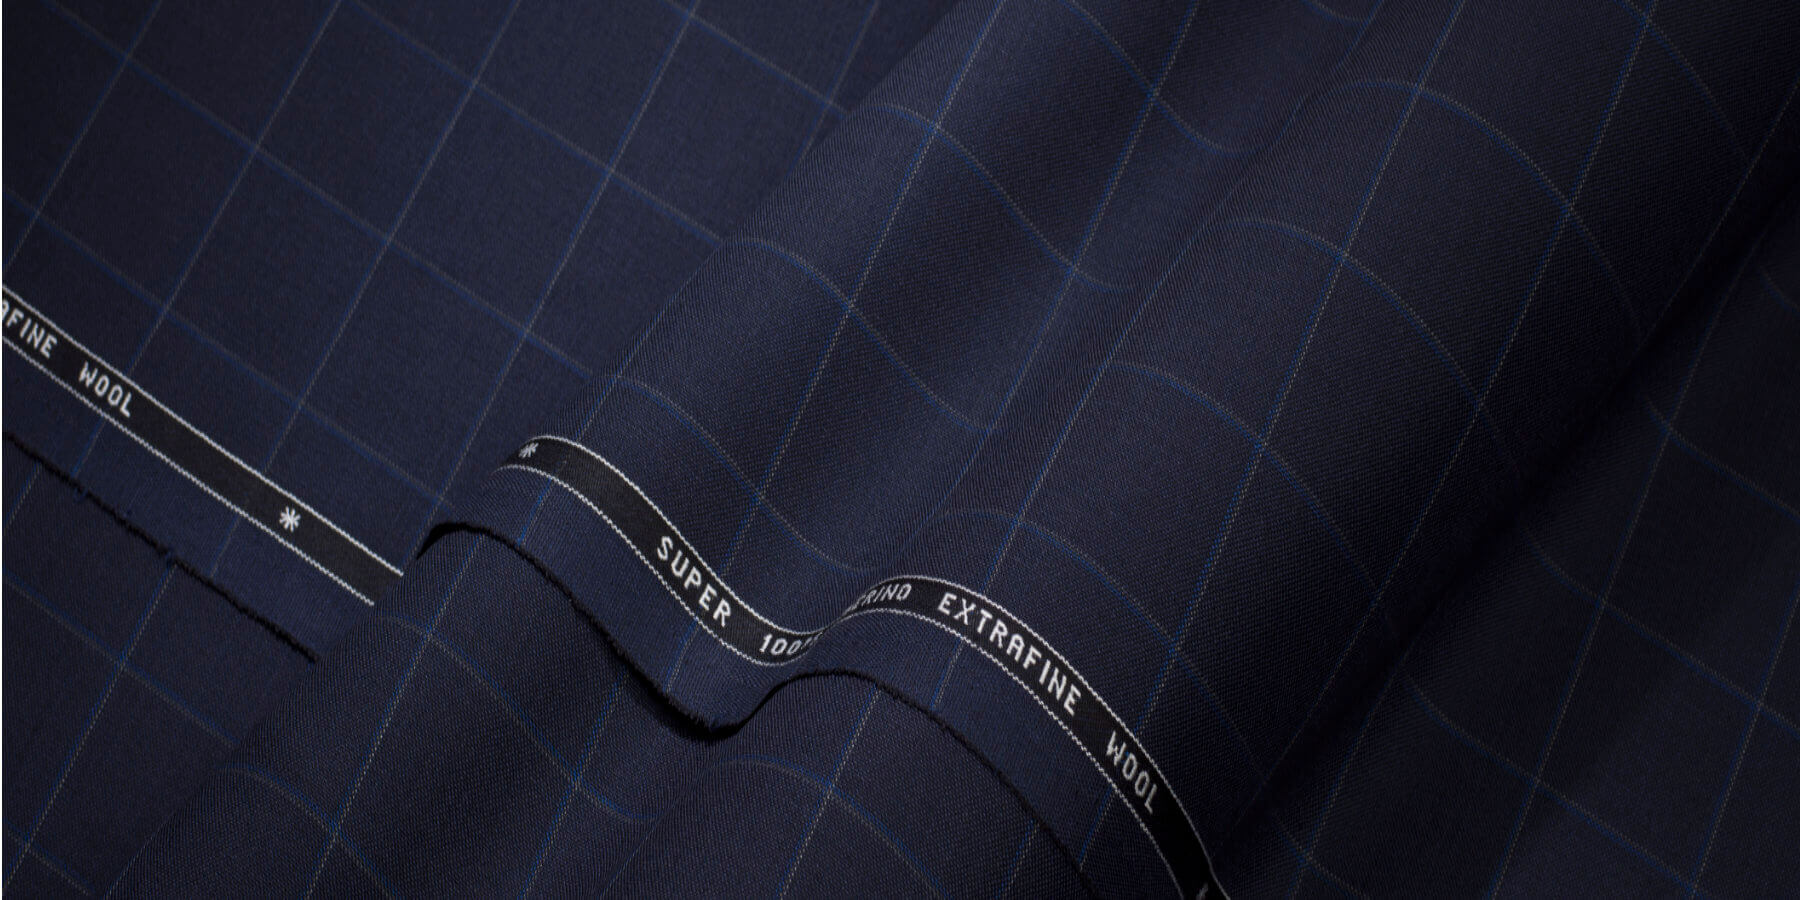 Our Practical Guide to Men's Suit Fabrics